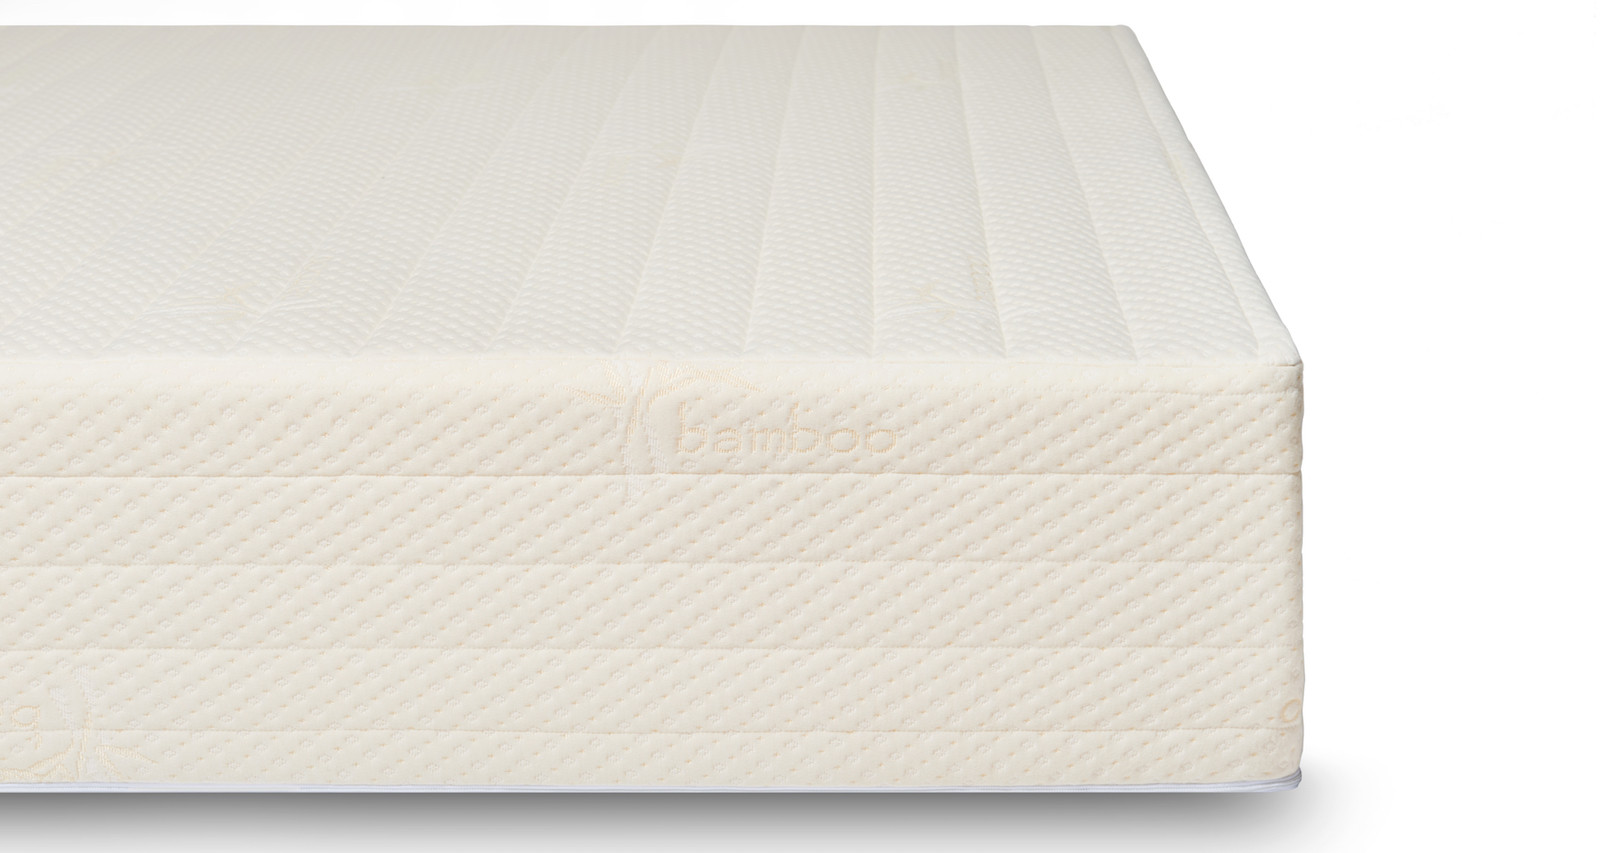 Brentwood Home Mattress Reviews, From Budget to Luxury - How Do They Do It? 2021